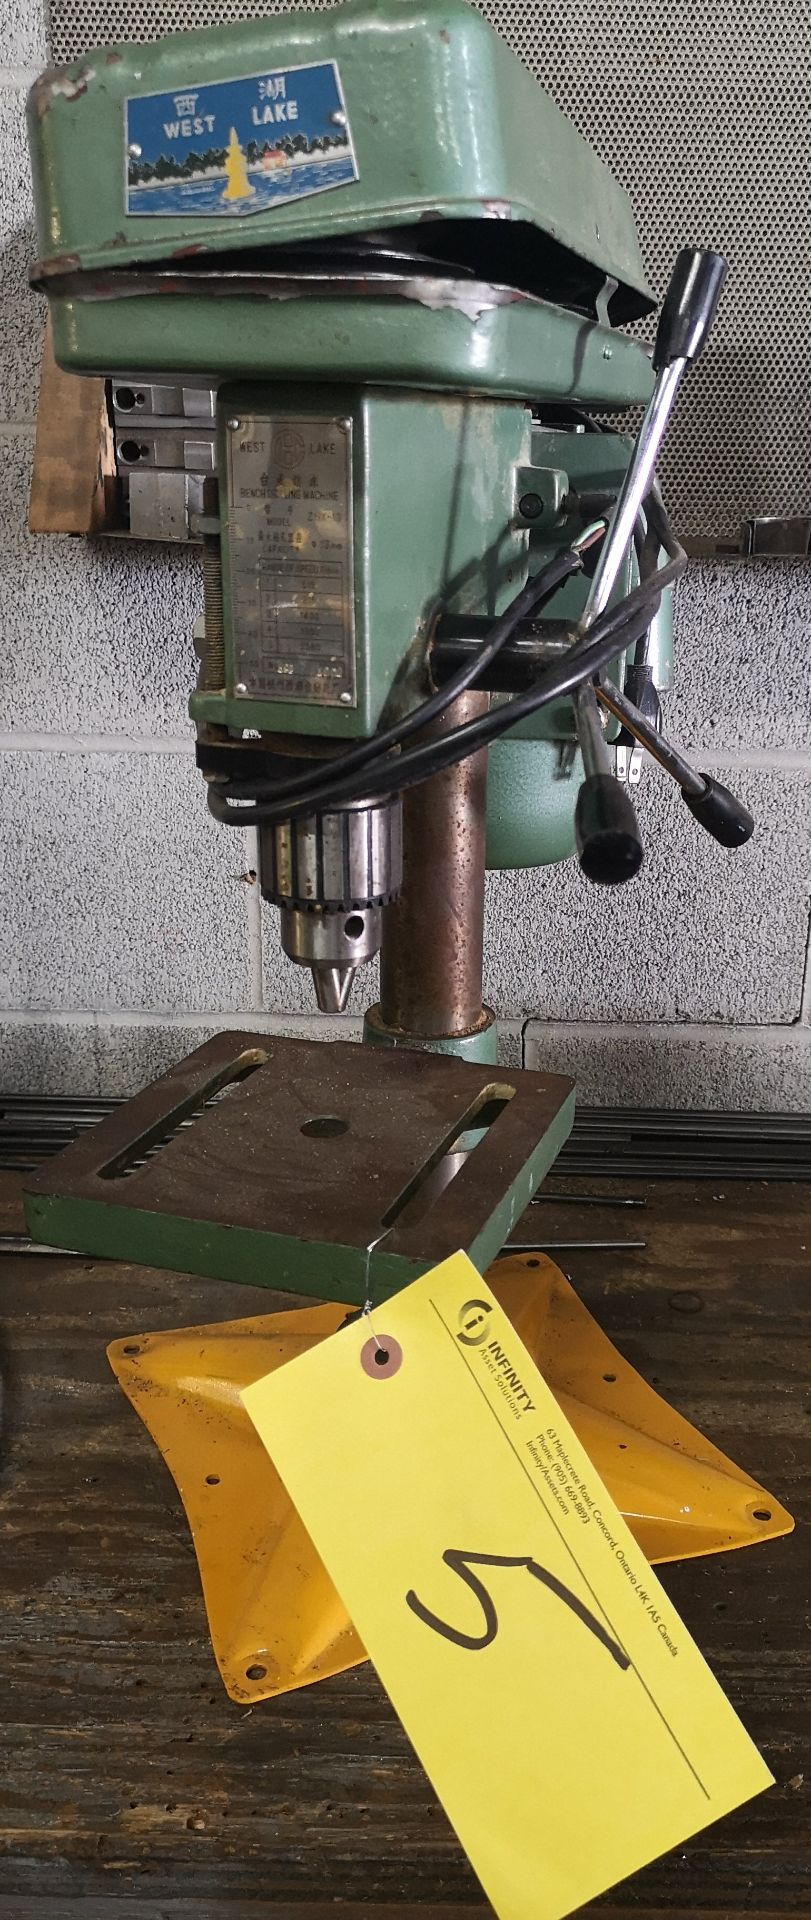 Lot 5 - WESTLAKE BENCH DRILL PRESS